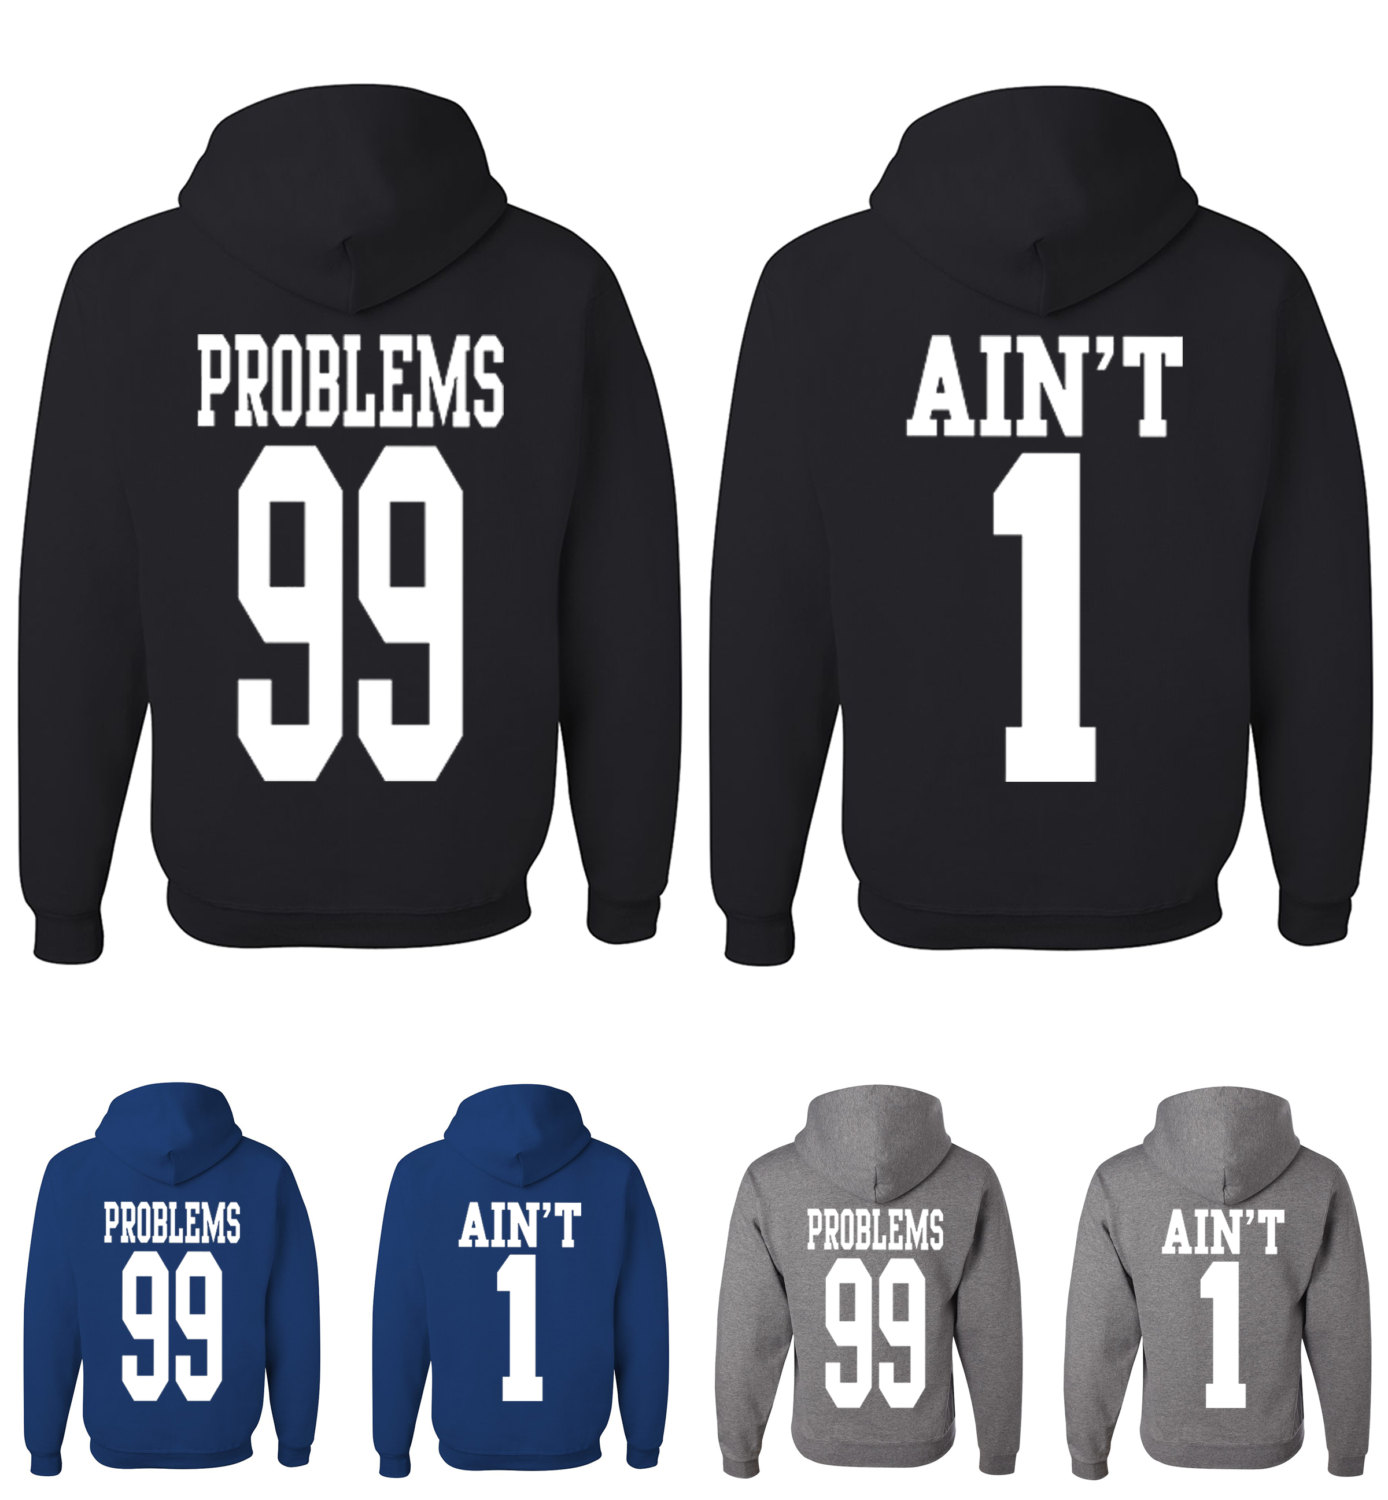 Couple matching 99 problems ain't 1 sweatshirts funny couples matching hoodies